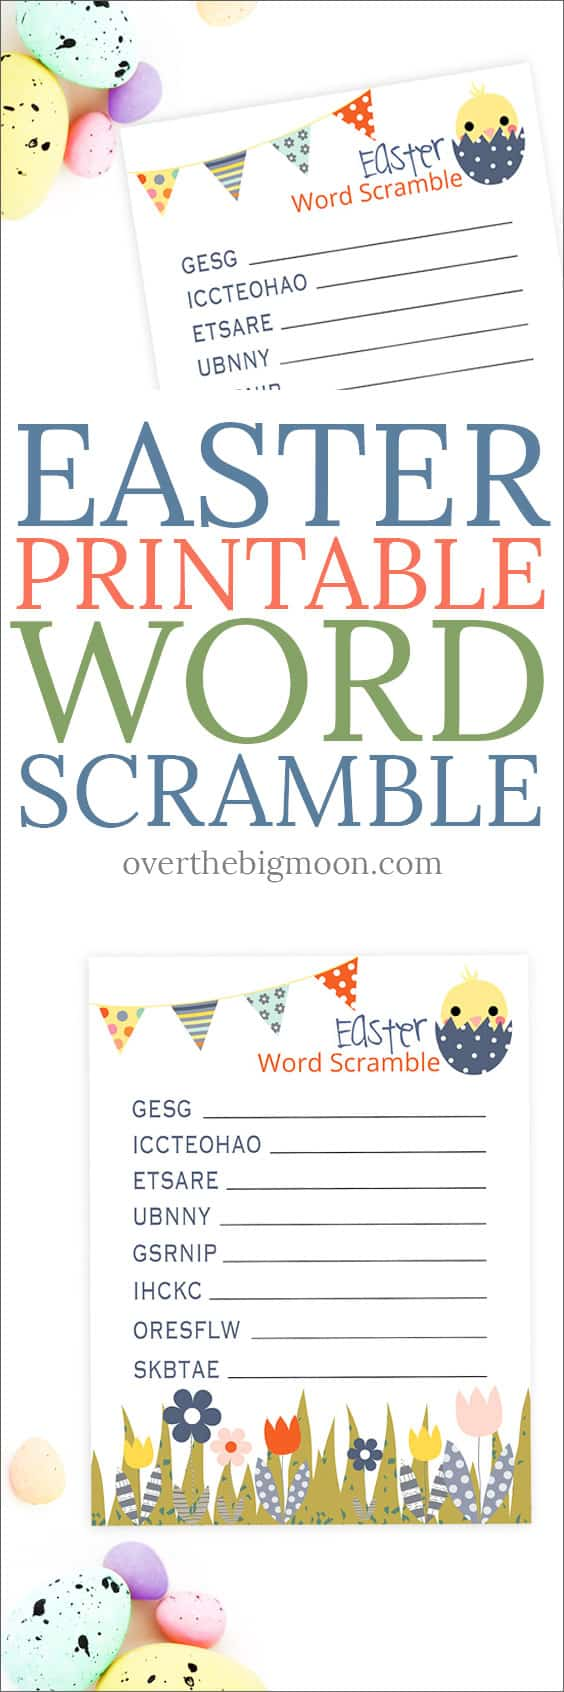 This Easter Printable Word Scramble is the perfect fun activity for kids to play this Easter season! From overthebigmoon.com!